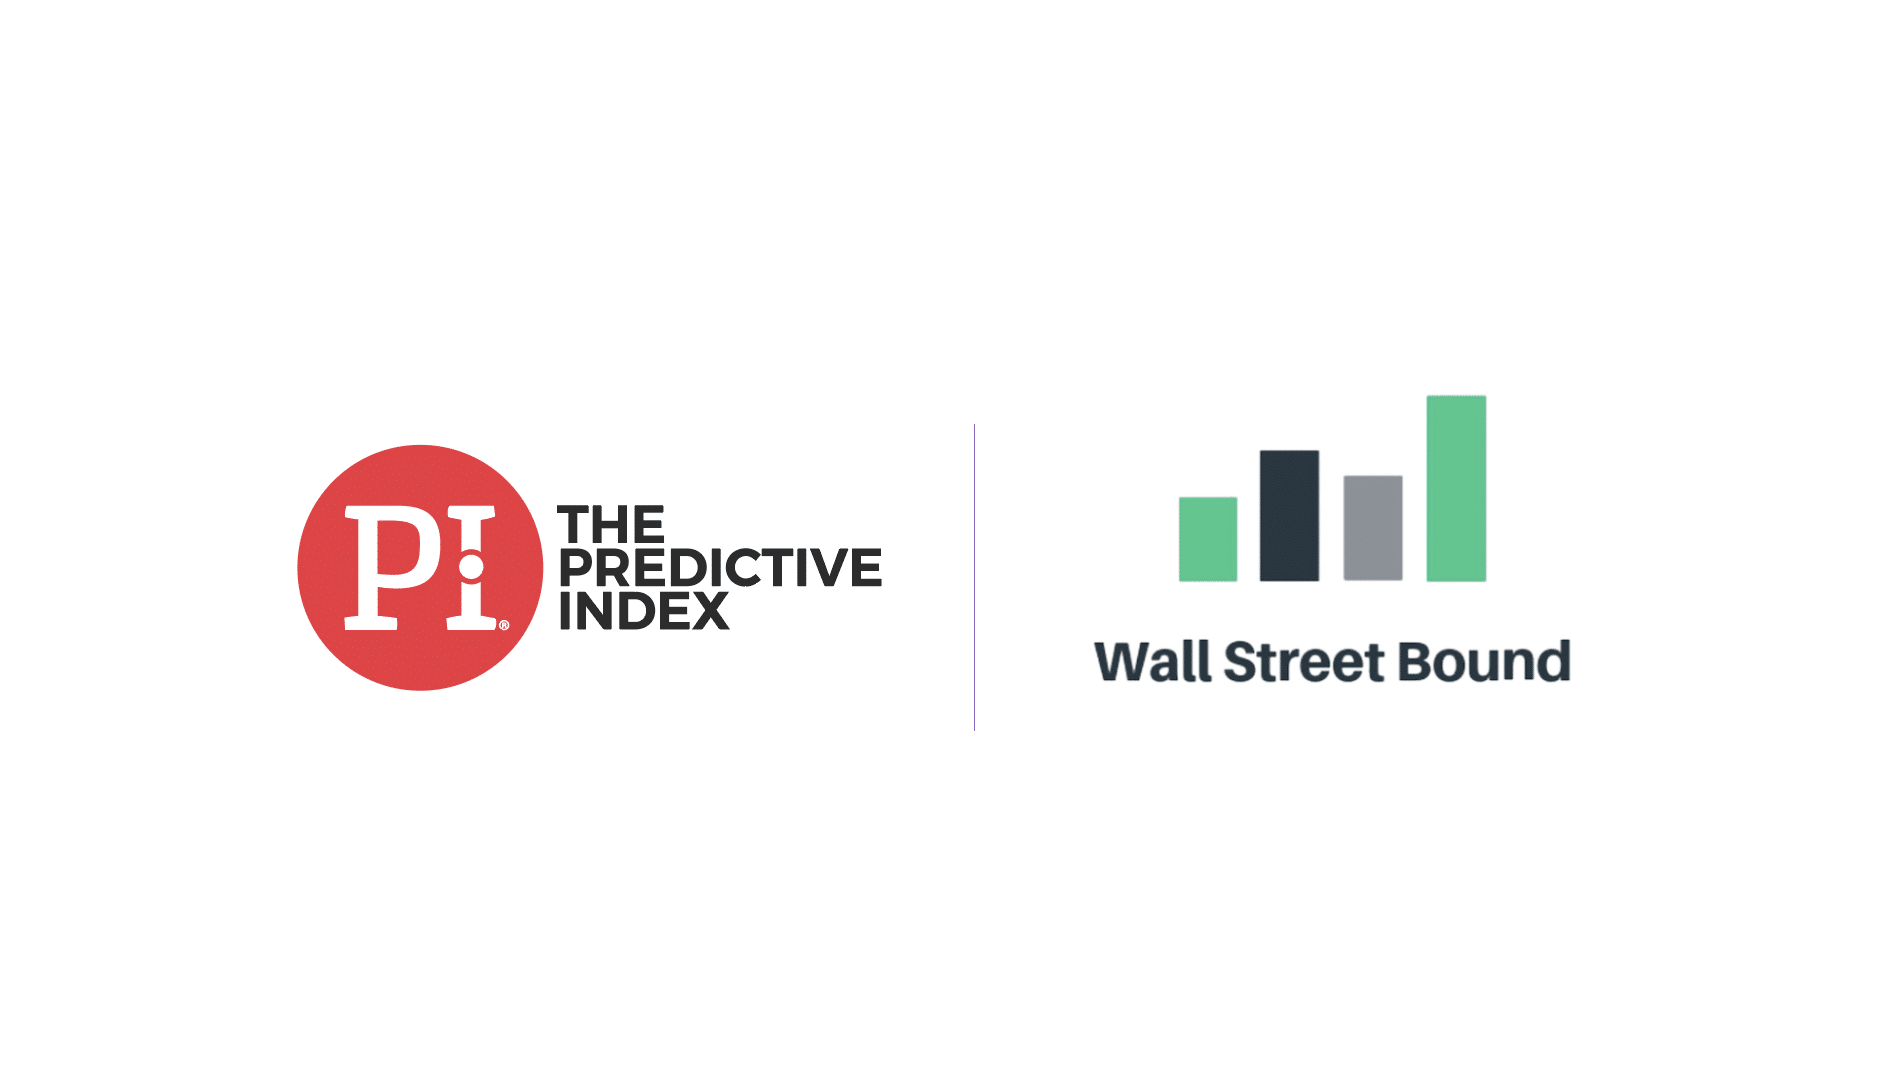 The Predictive Index and Wall Street Bound